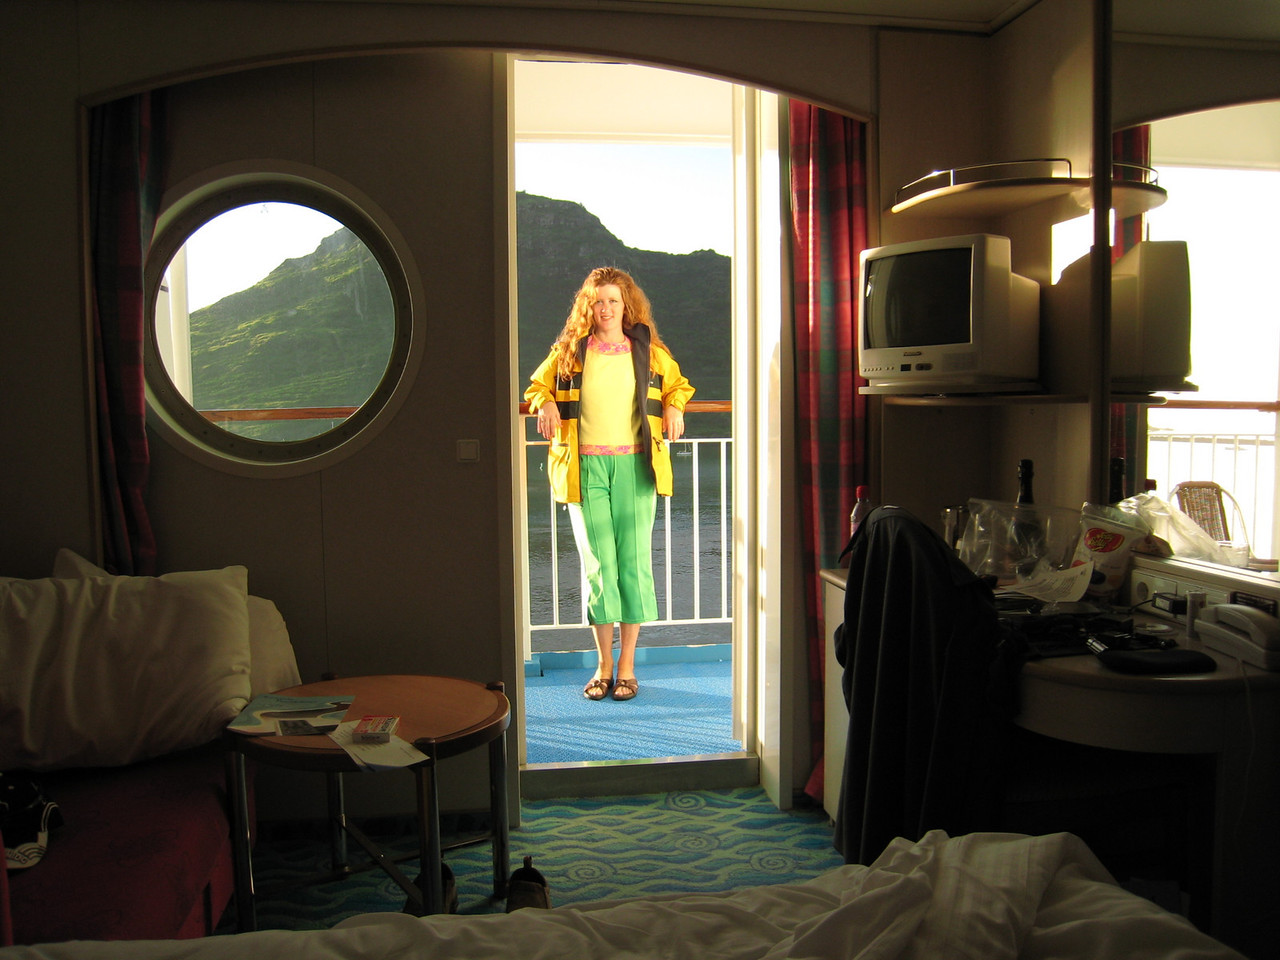 Our Stateroom on our ship.